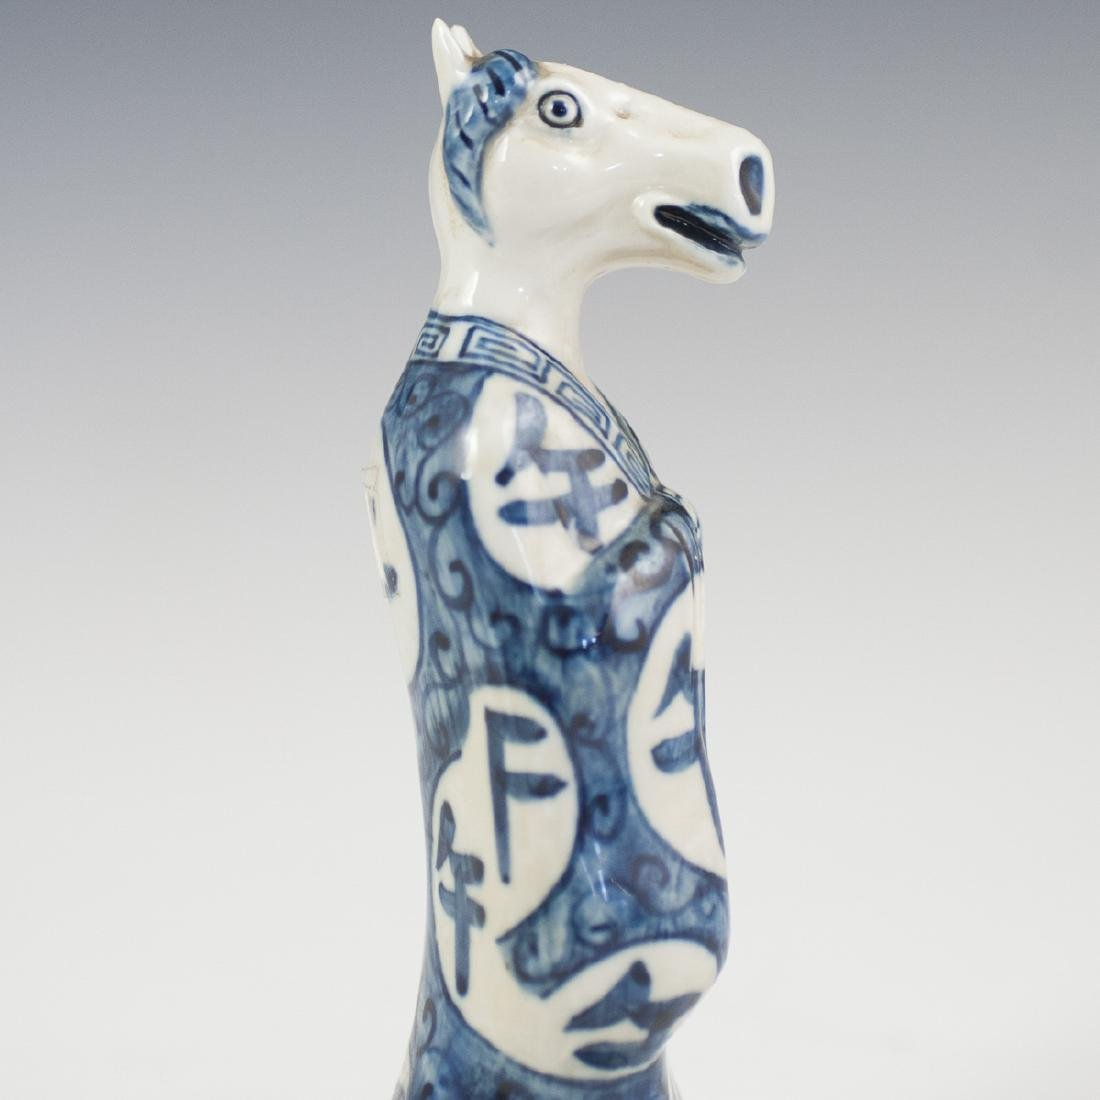 Chinese Porcelain Blue & White Figurine - 2